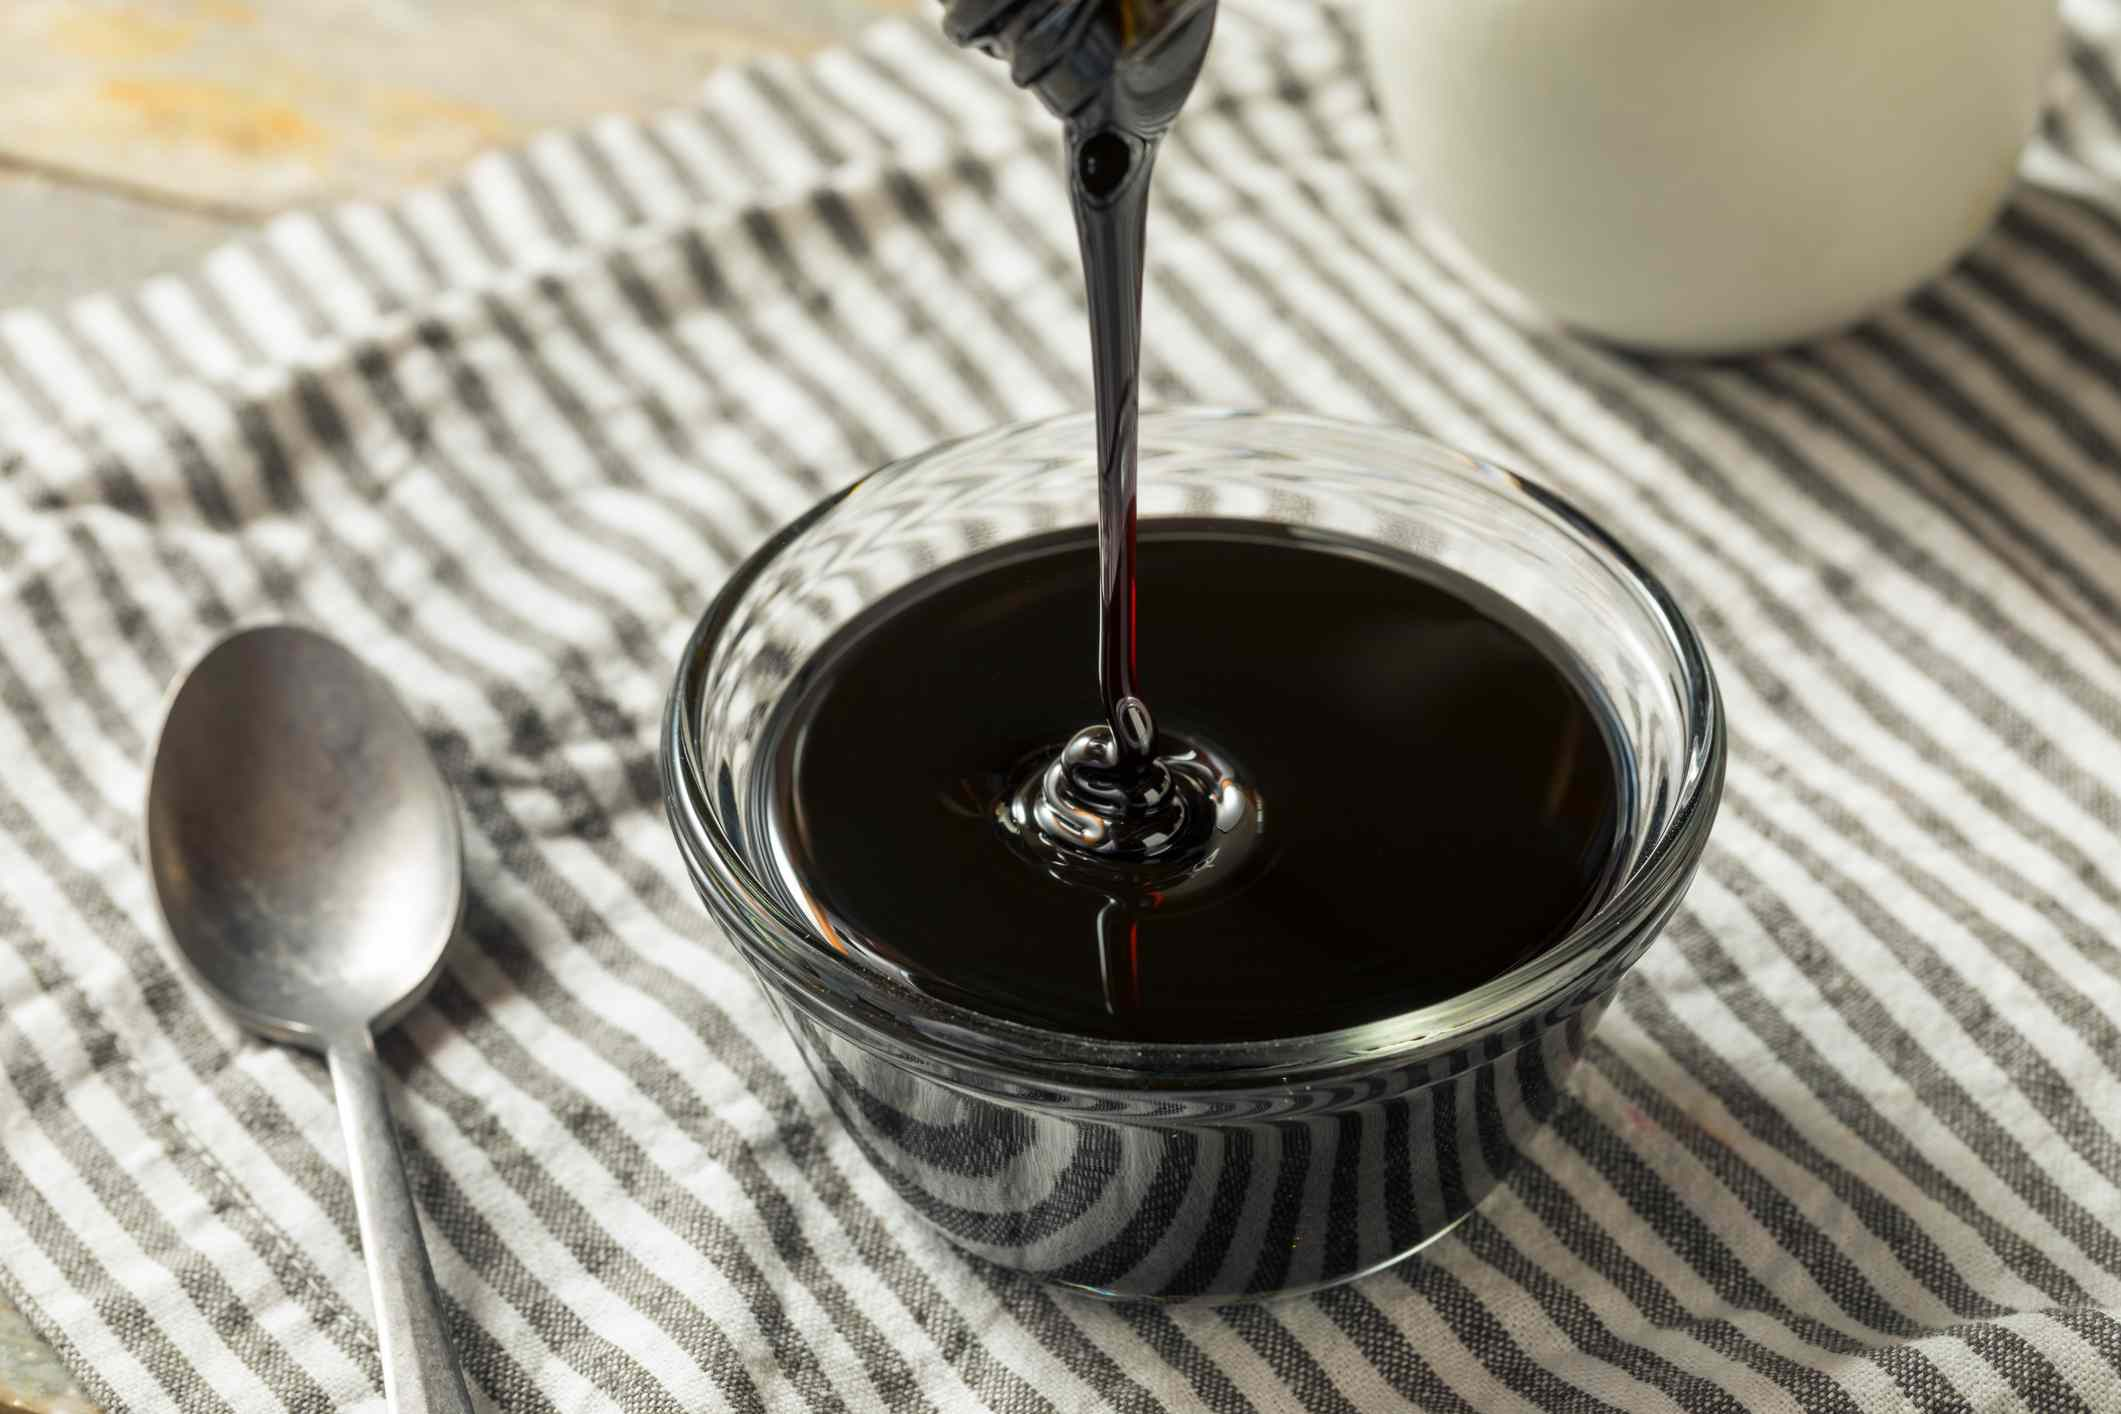 High-angle view of black molasses being poured into bowl